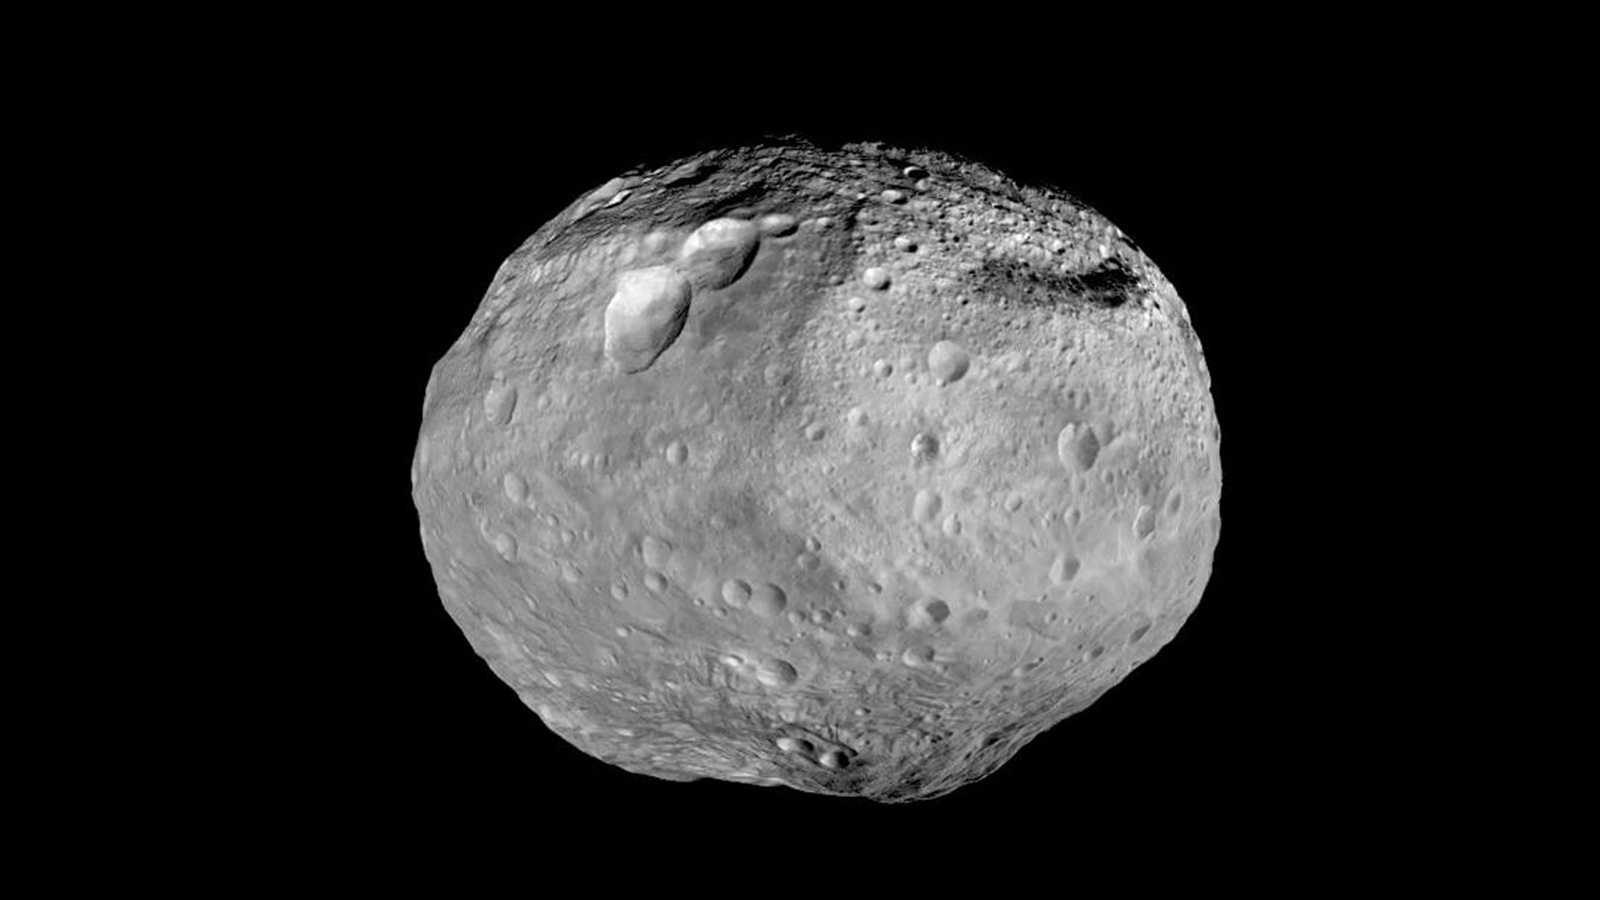 Full disk view of roundish asteroid